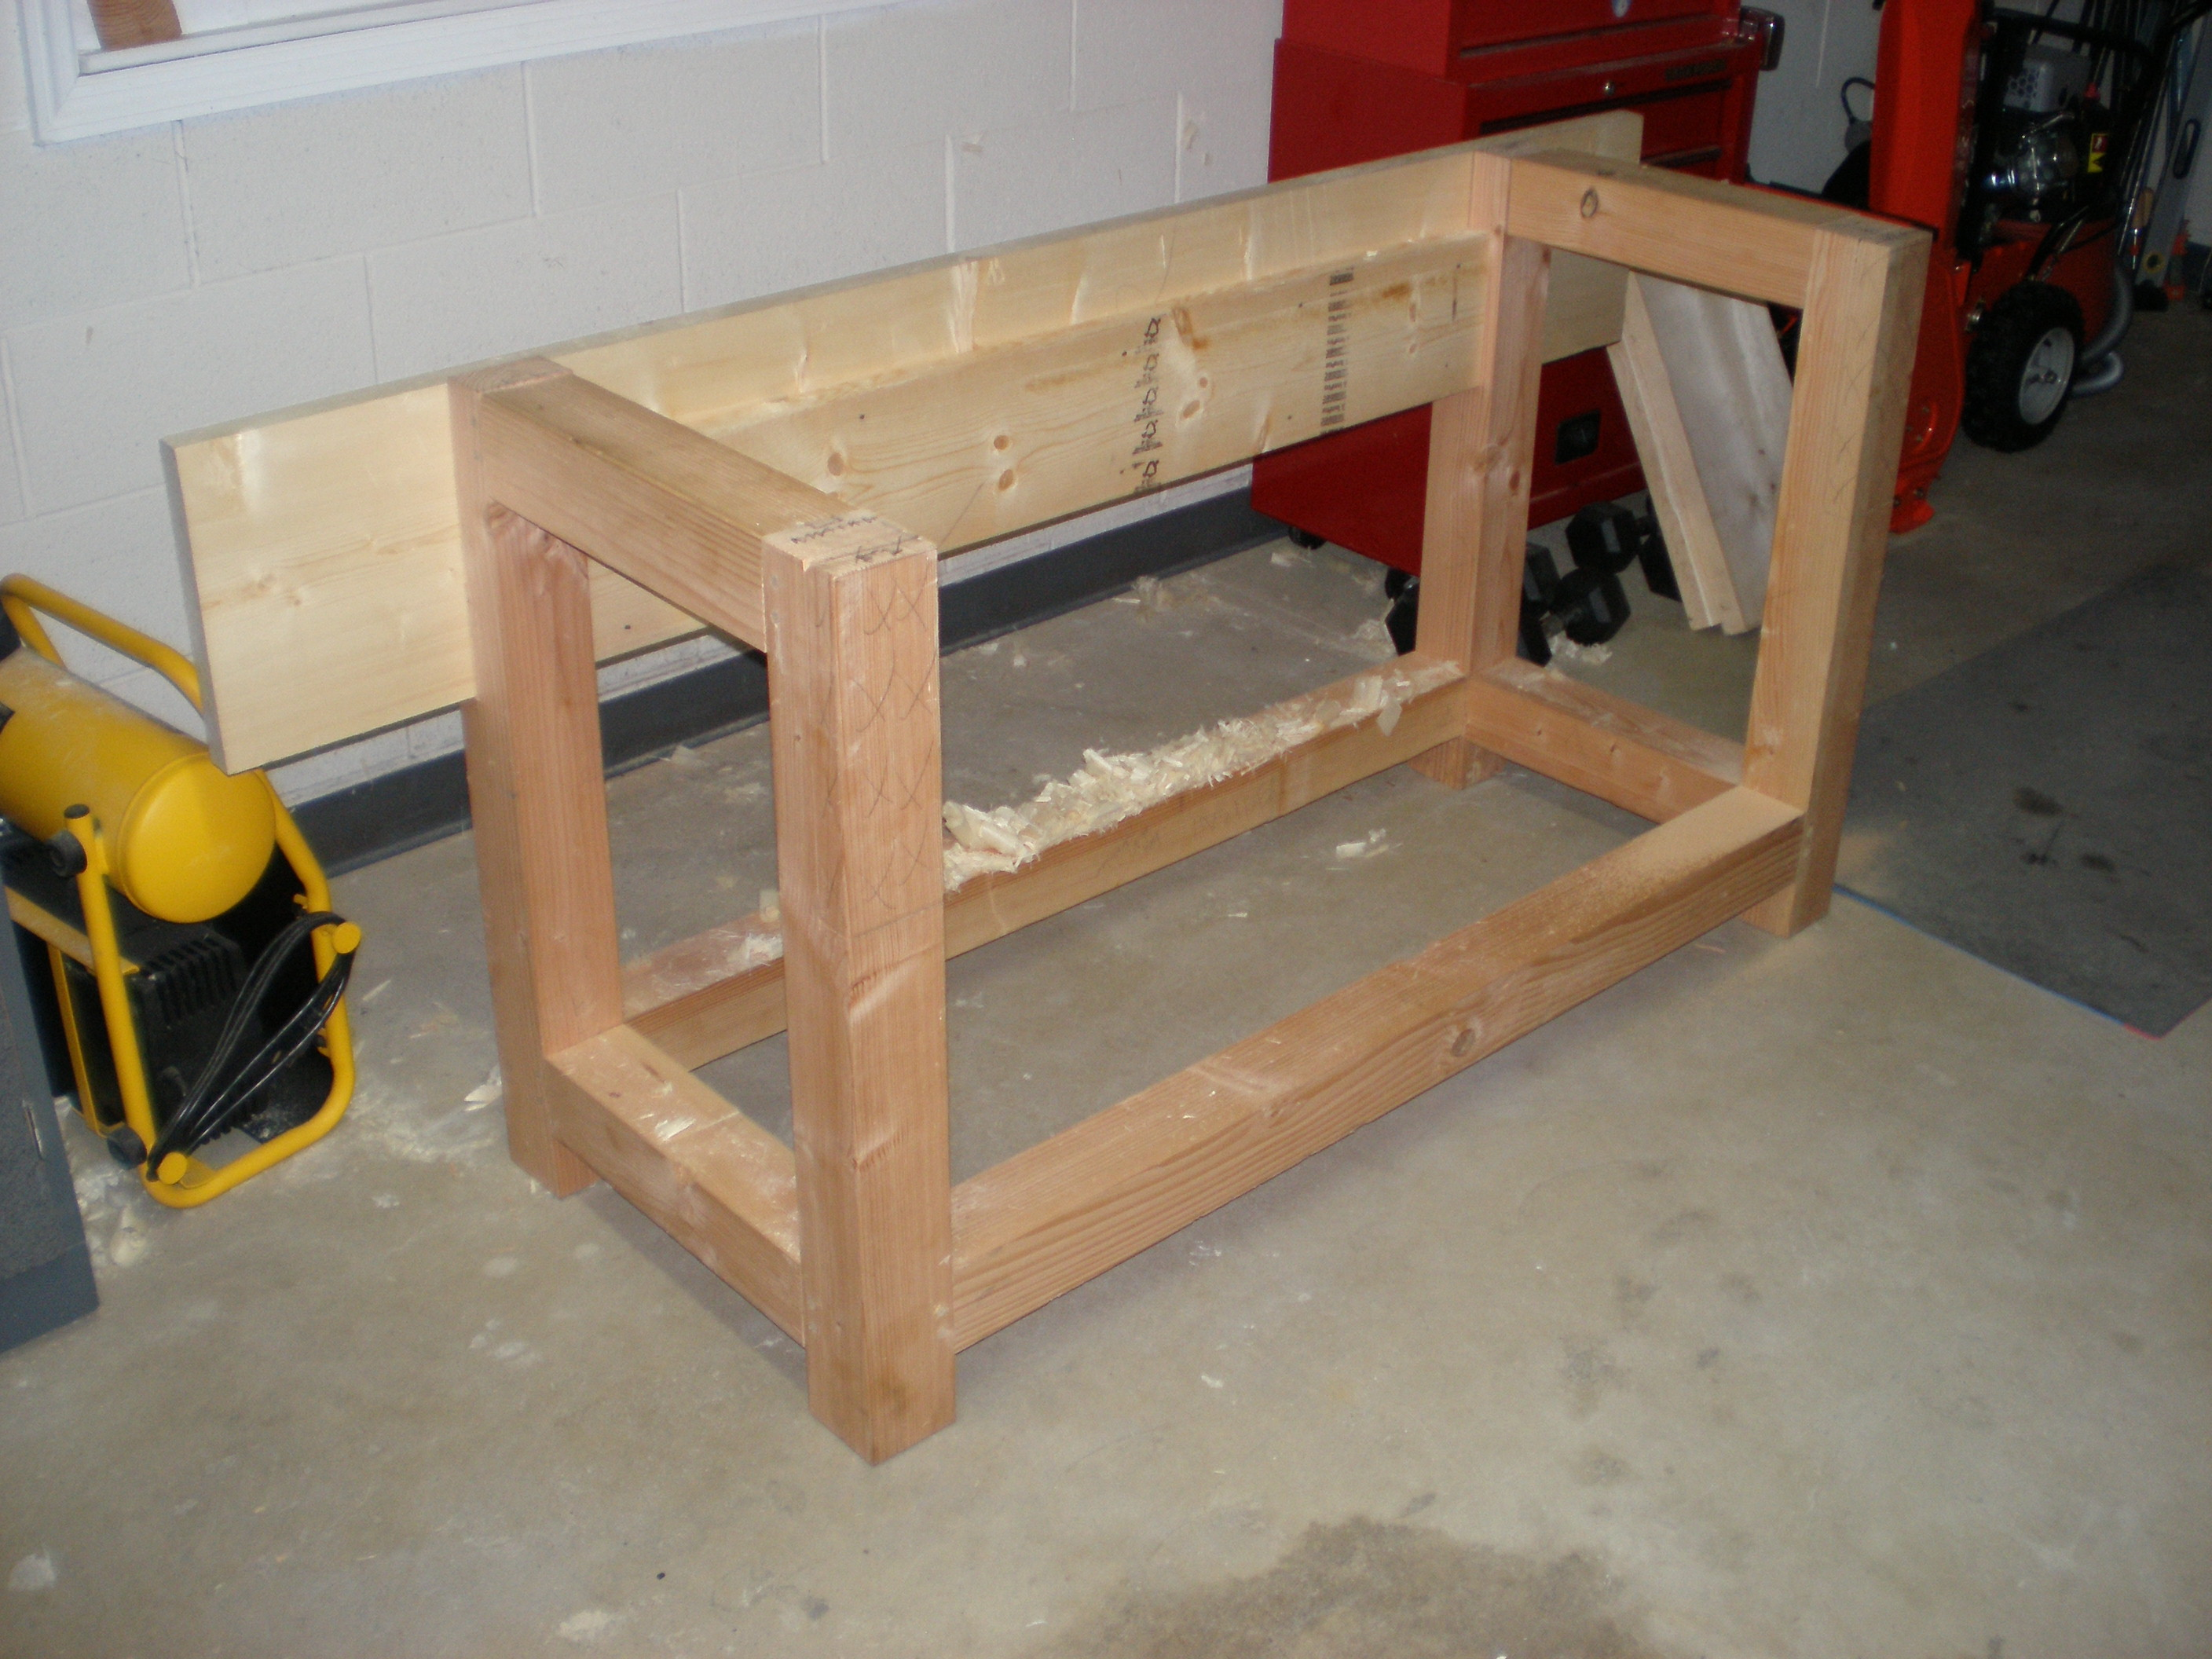 Sawhorse Legs For Table | Work Bench Legs | Craftsman Work Benches